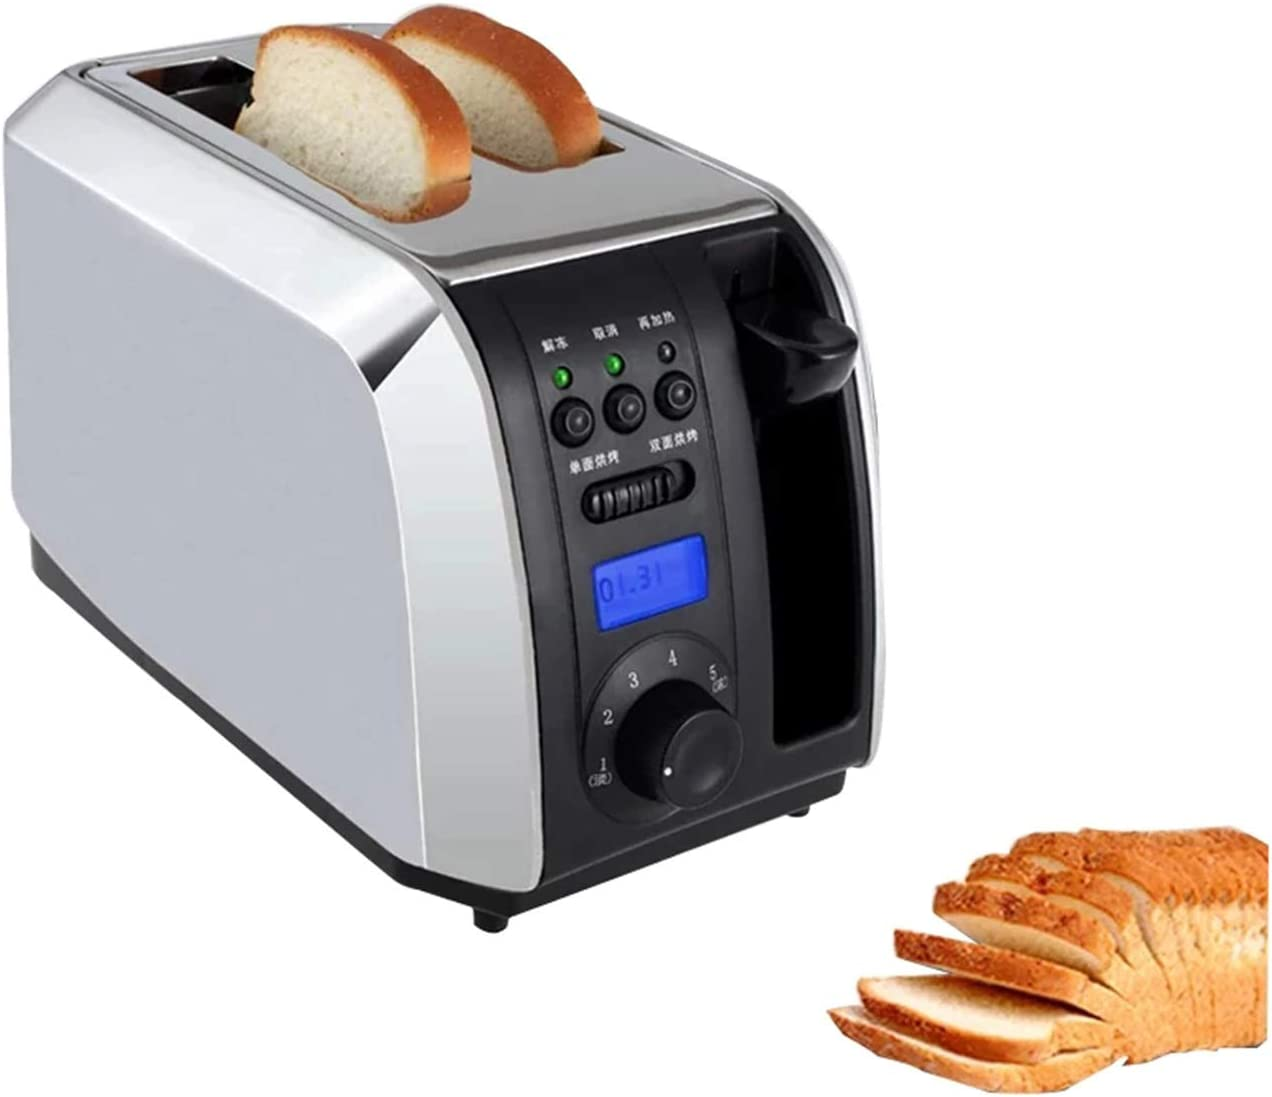 Digital Toaster Oven, Stainless Steel Breakfast Bread Baking Machine, 2 Slices Slots Automatic Toast Oven, 1000W